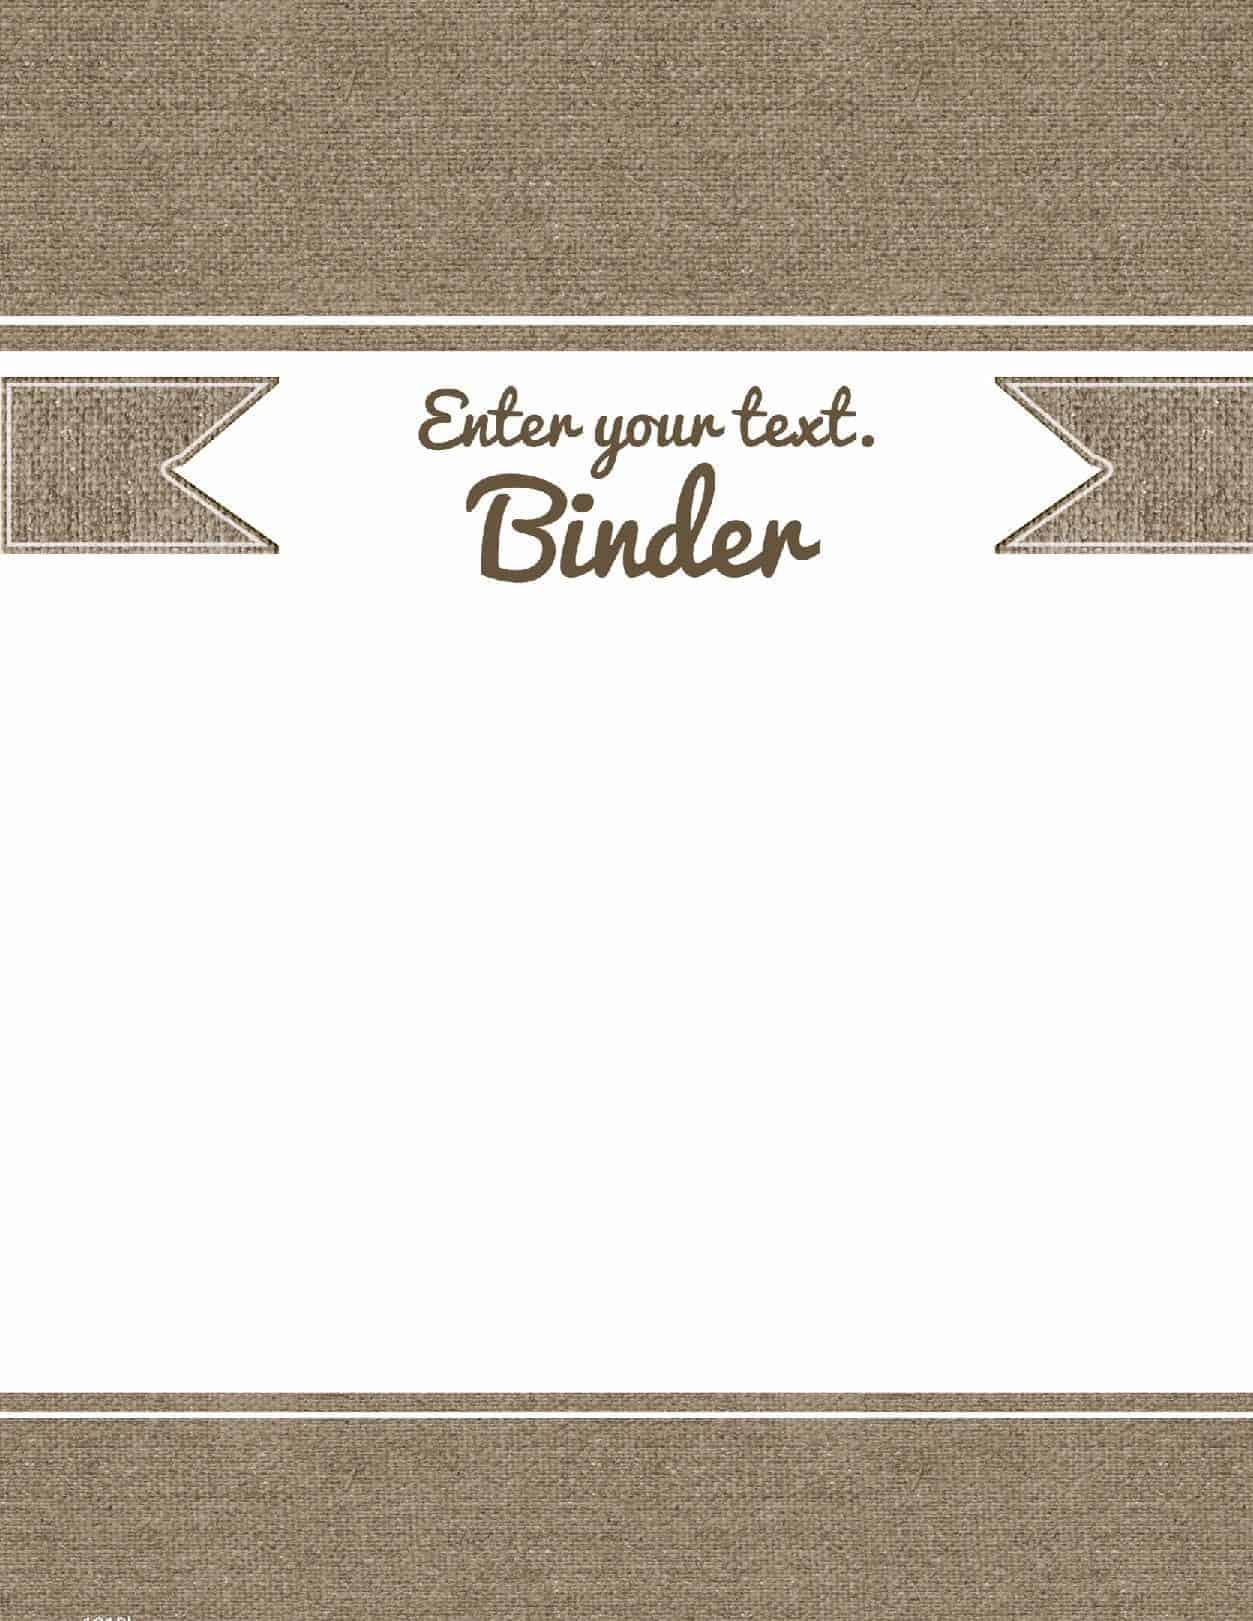 Free binder cover templates for Cool binder cover templates